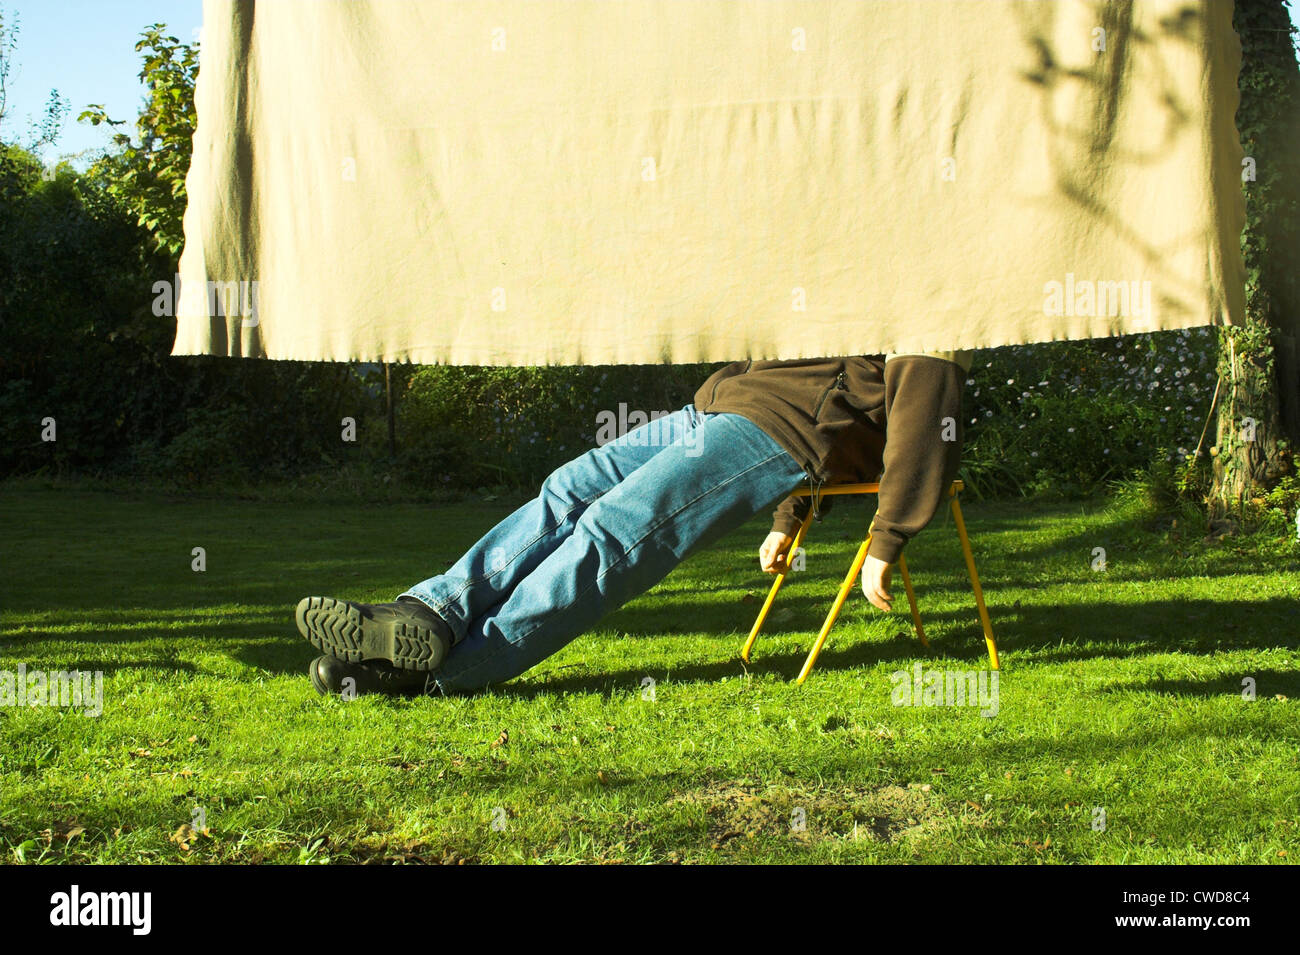 man,enjoyment,relaxation,resting,relaxation,recreation - Stock Image